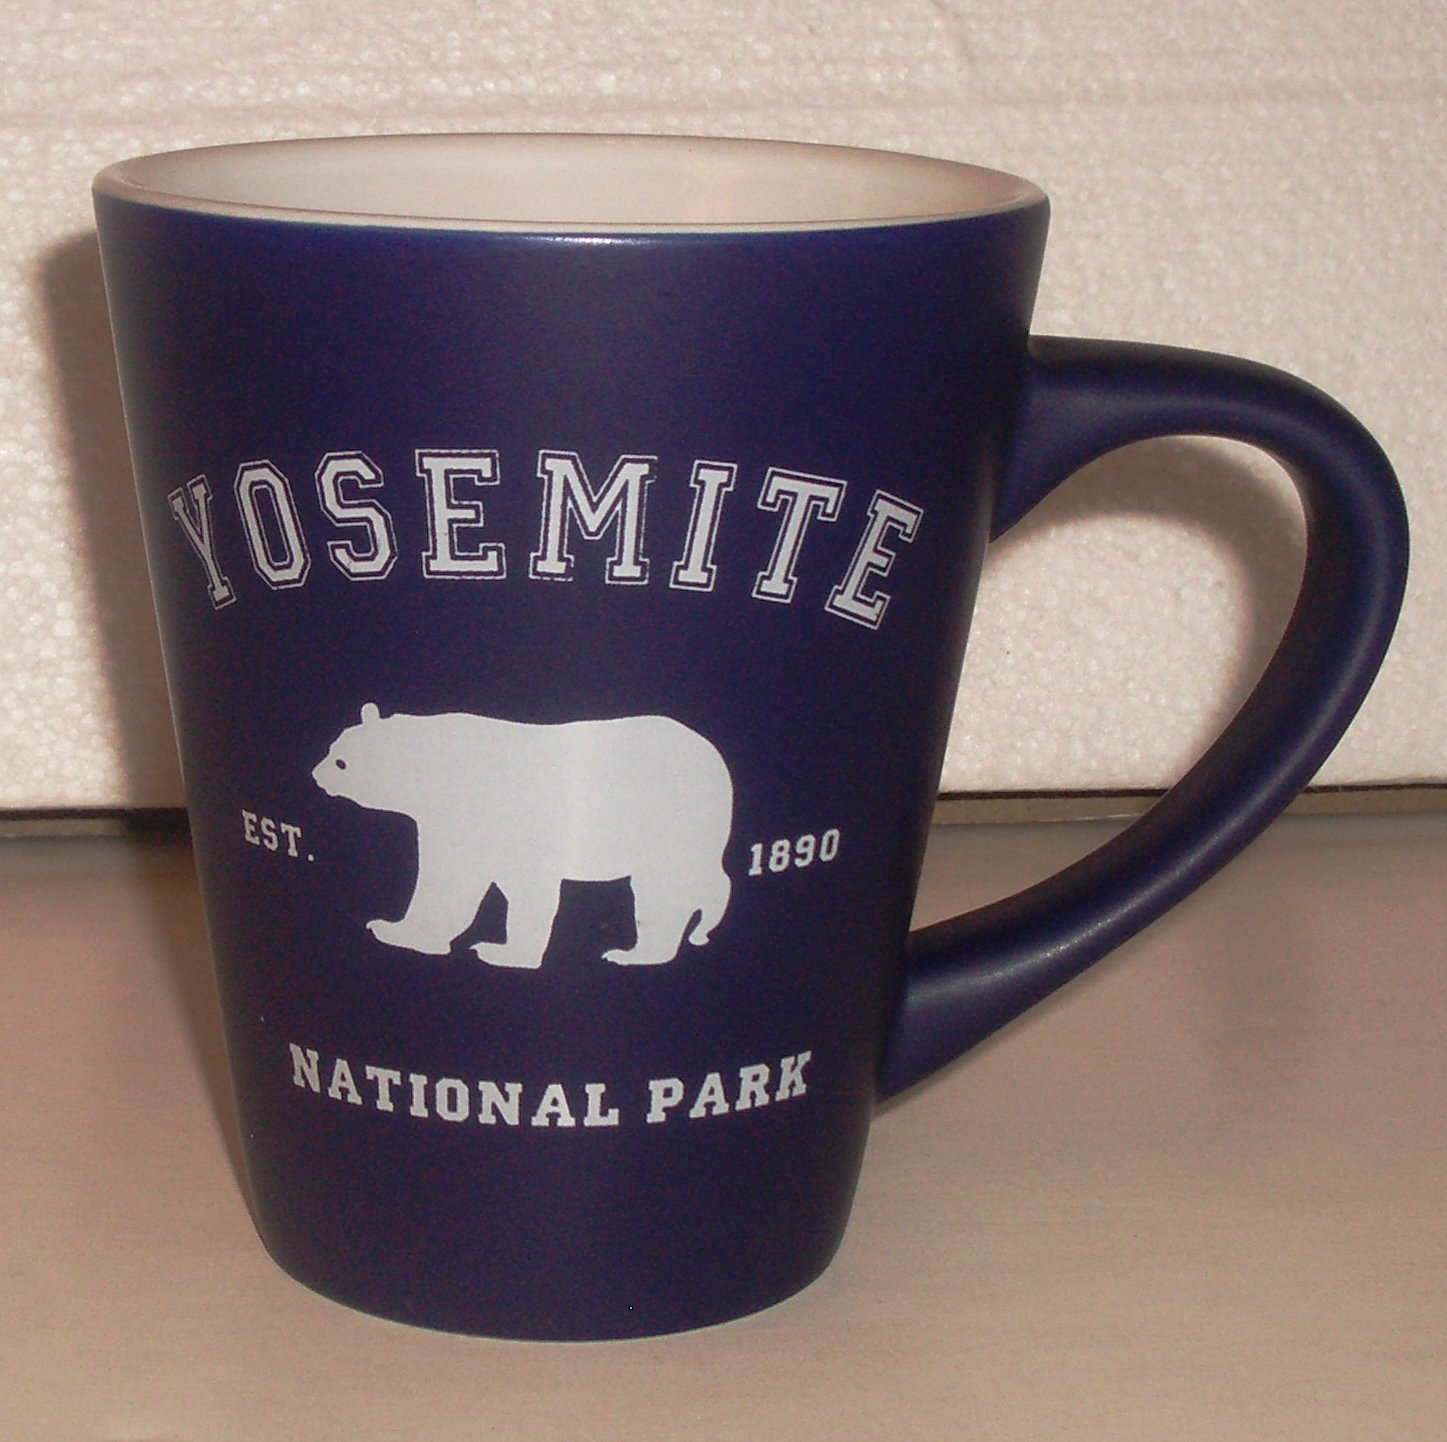 Souvenir Yosemite National Park Ceramic Coffee Mug Dark